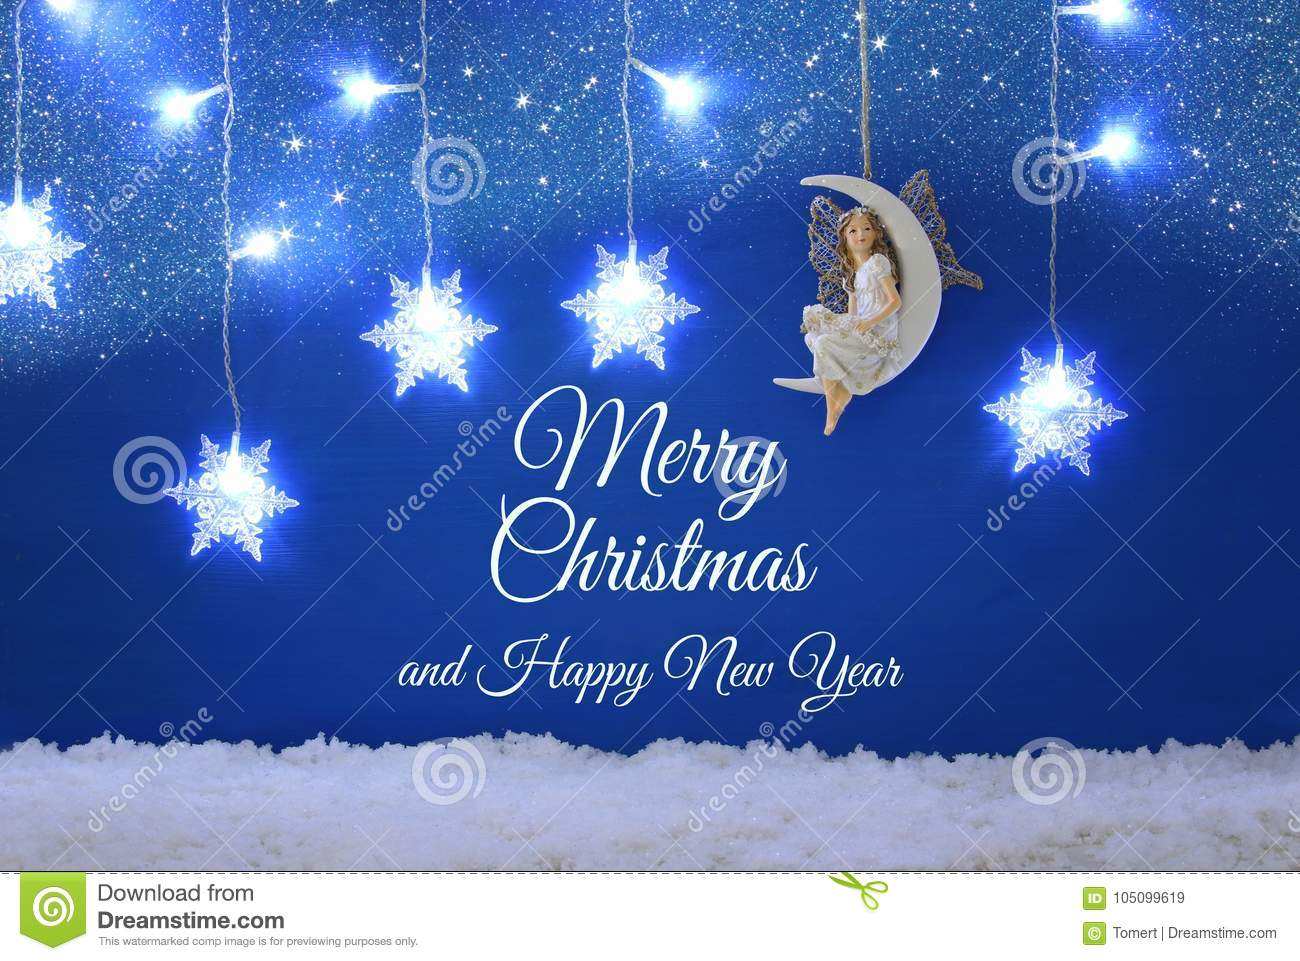 Weihnachtsbilder Merry Christmas.Magical Christmas Image Of Little White Fairy With Glitter Wings